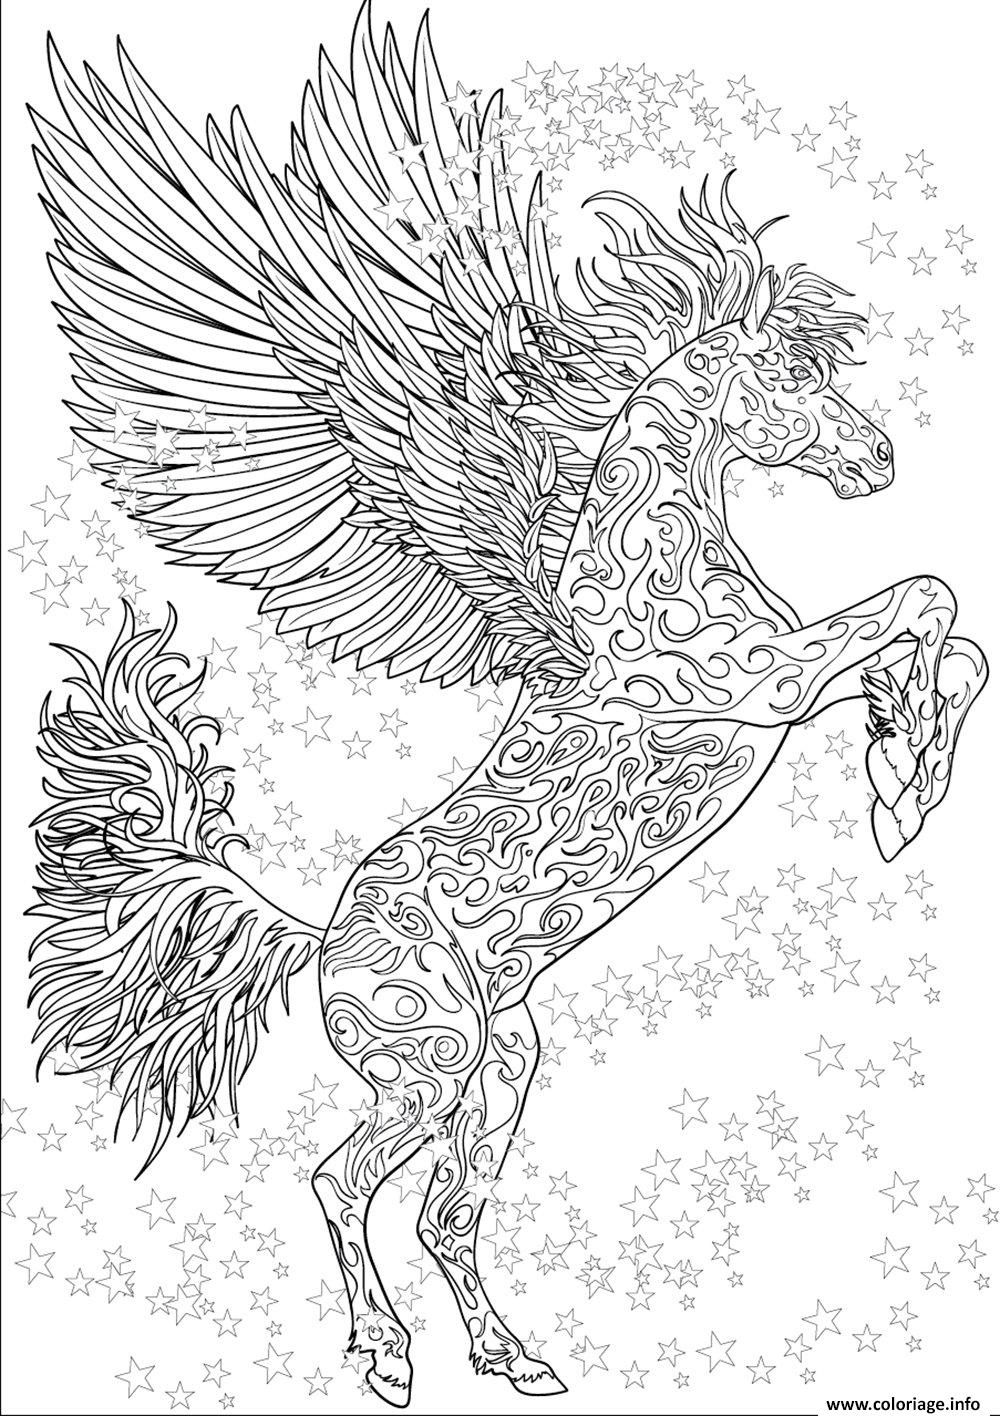 Coloriage cheval adulte licorne ailes antistress etoiles - Coloriage adulte difficile ...